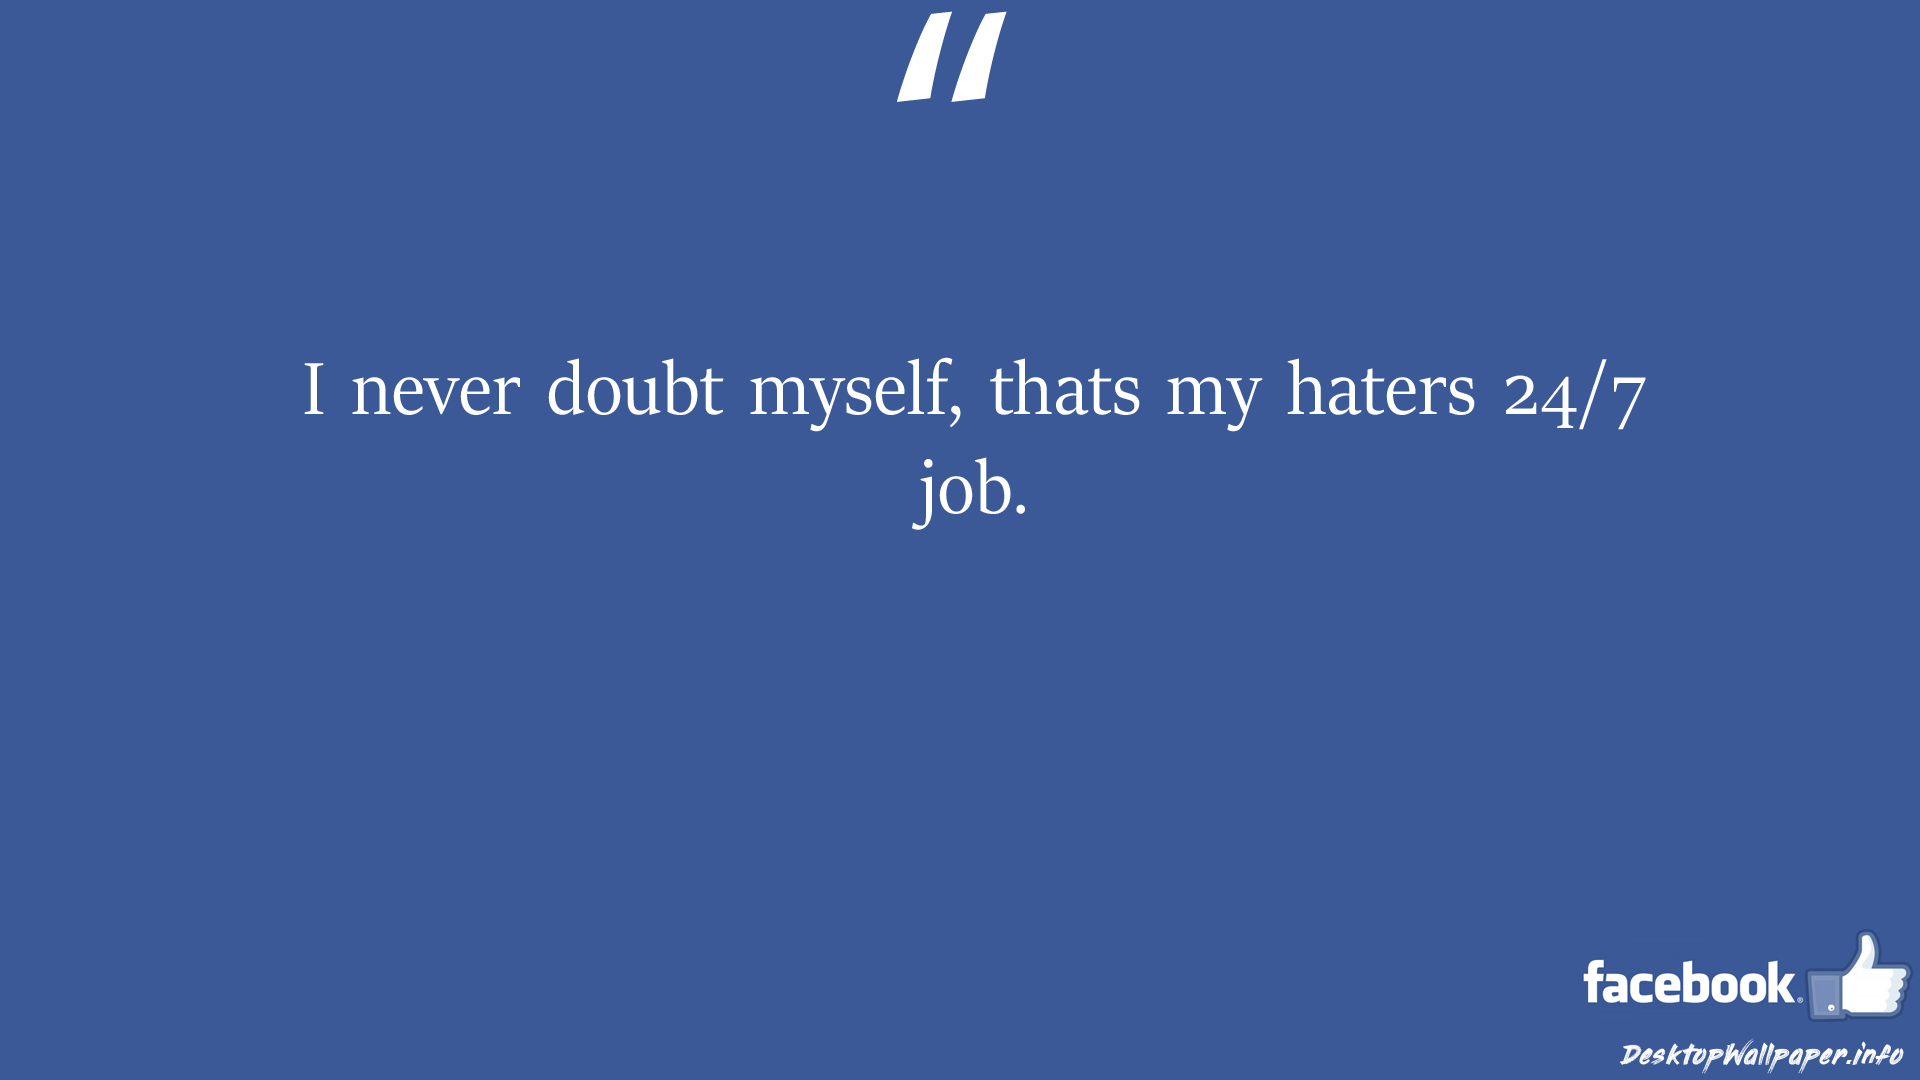 I never doubt myself thats my haters 247 job facebook status